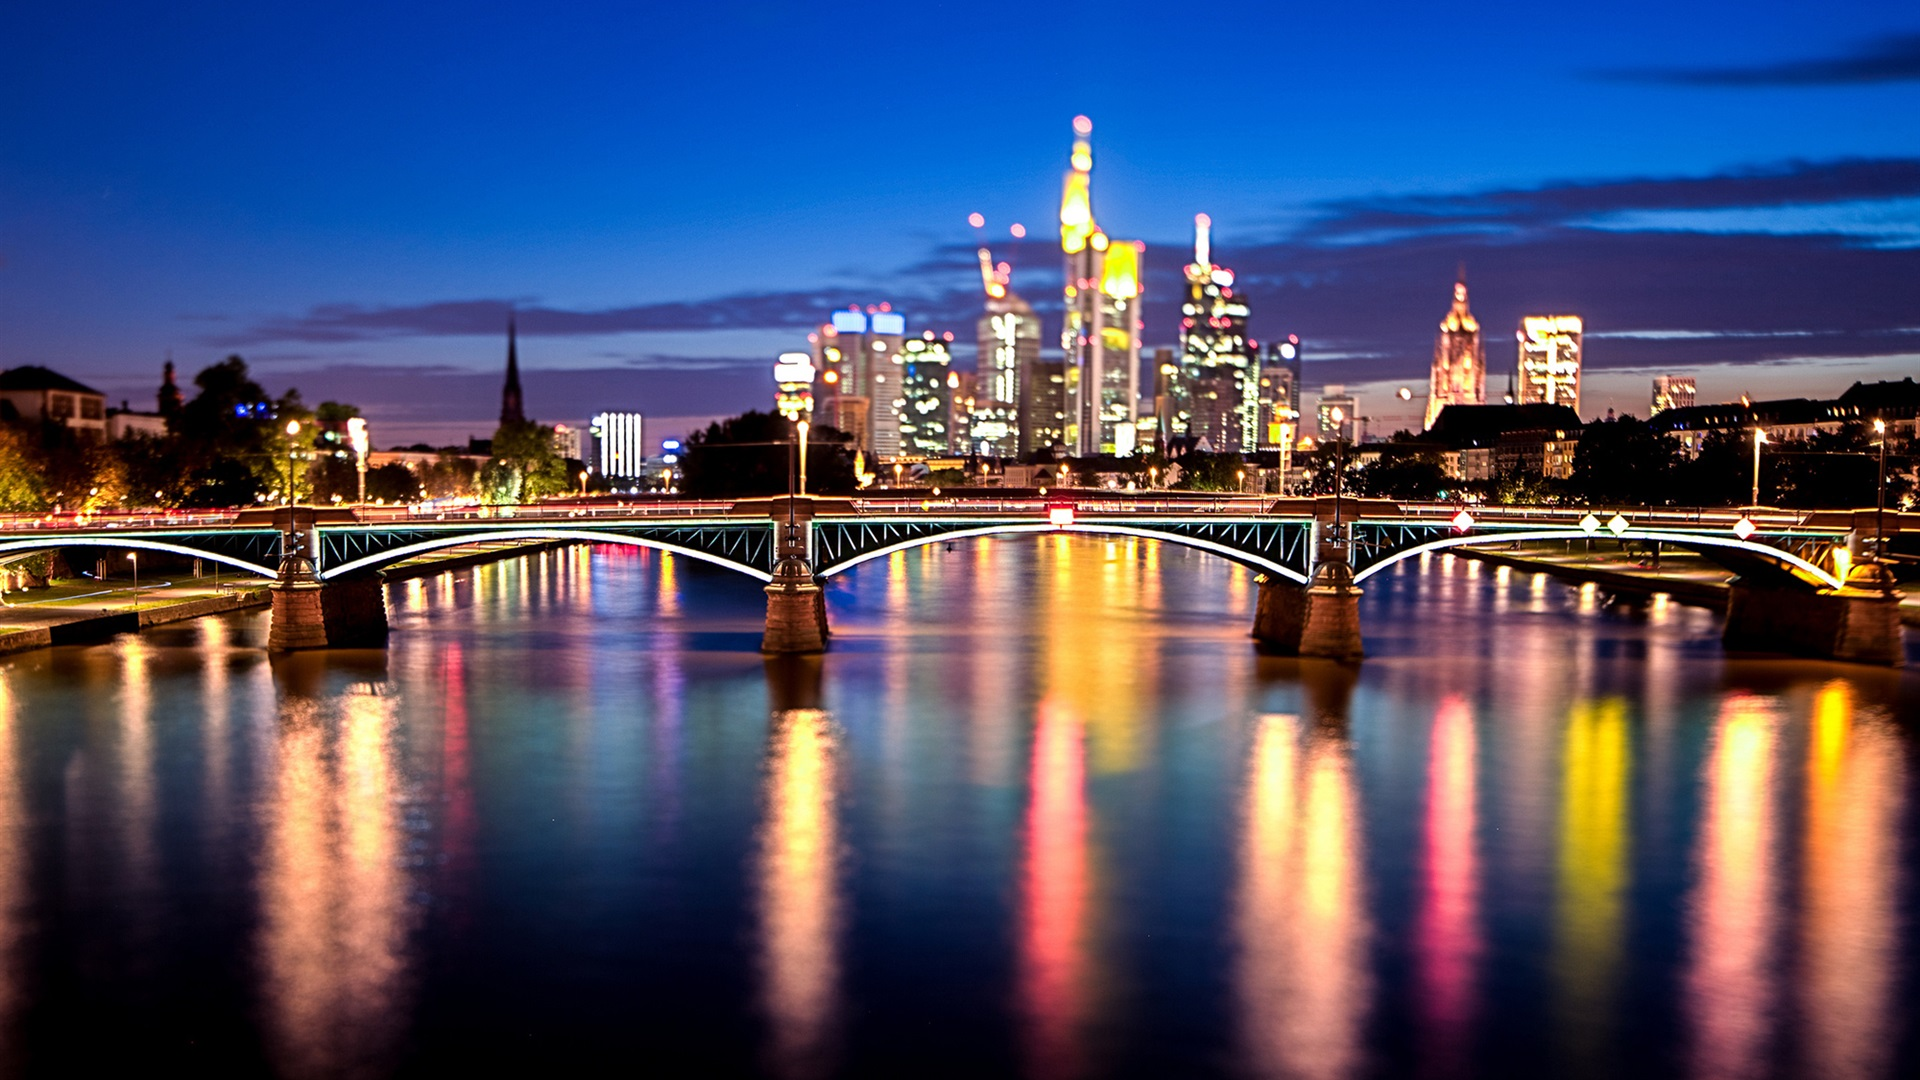 Germany City At Night HD Wallpaper, Background Images